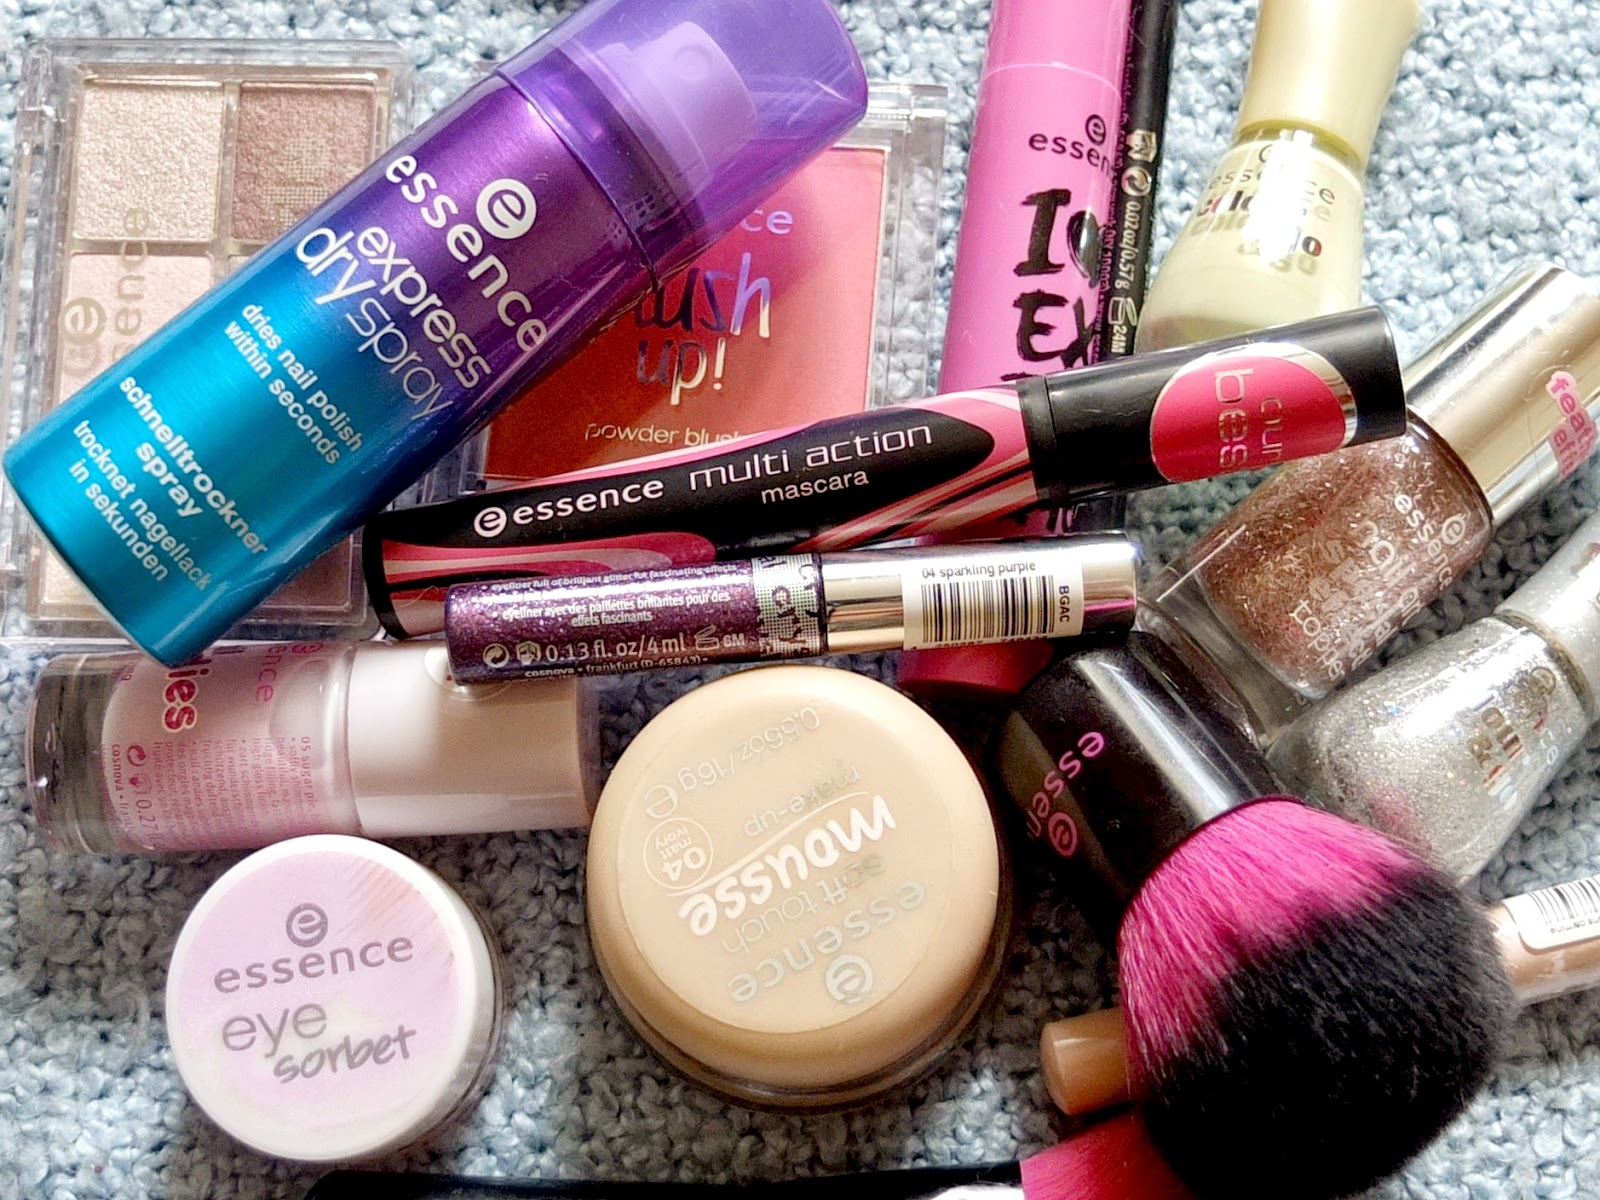 Beauty blog review of Essence make up products in the UK. Now available at Wilkinson stores.